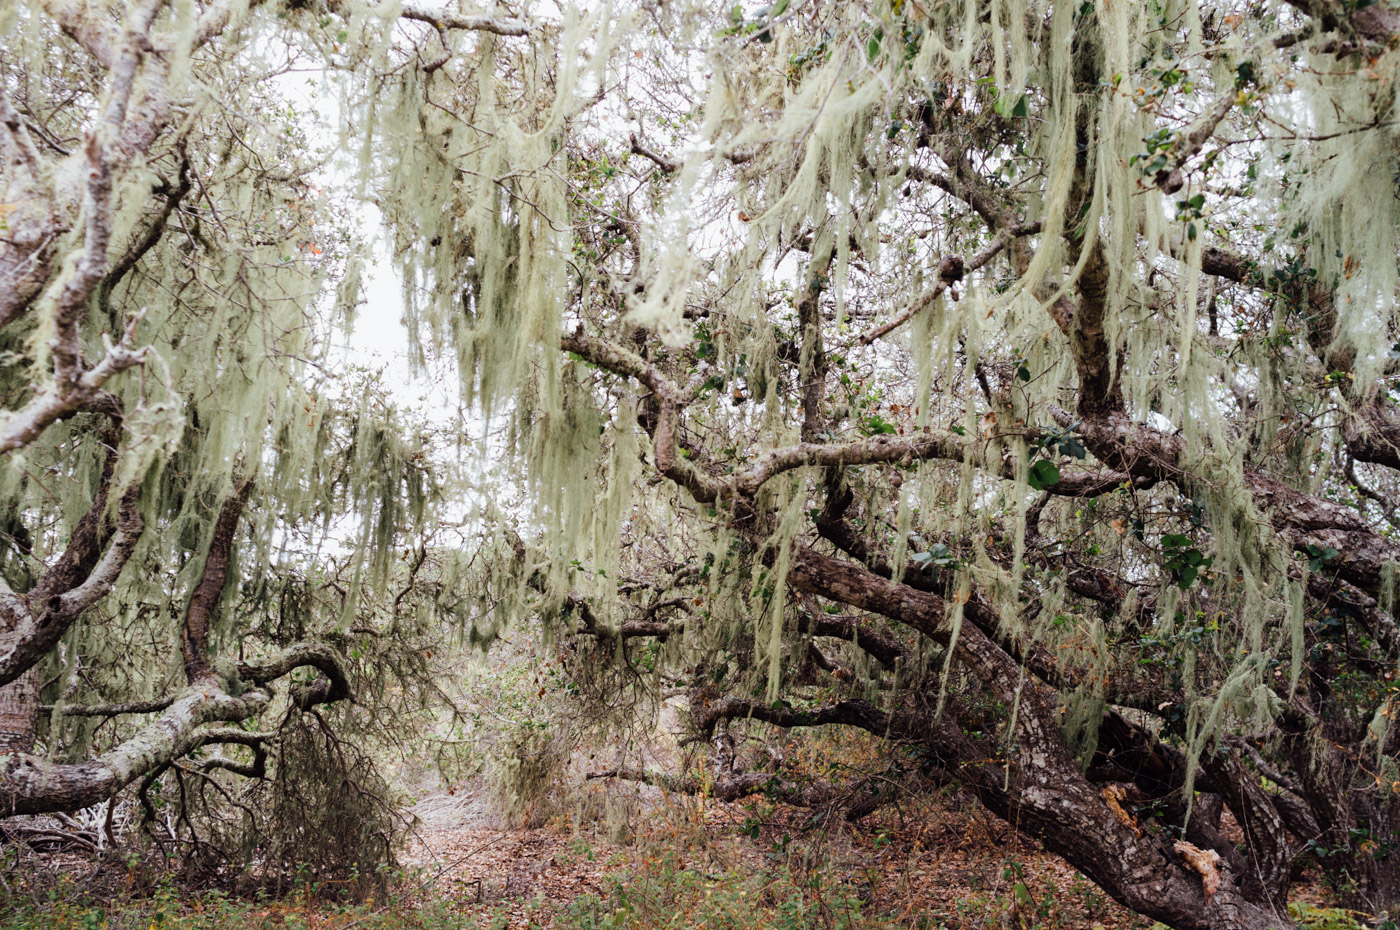 The eerie beauty of the moss covered - Elfin Forest - Let's Photo Trip